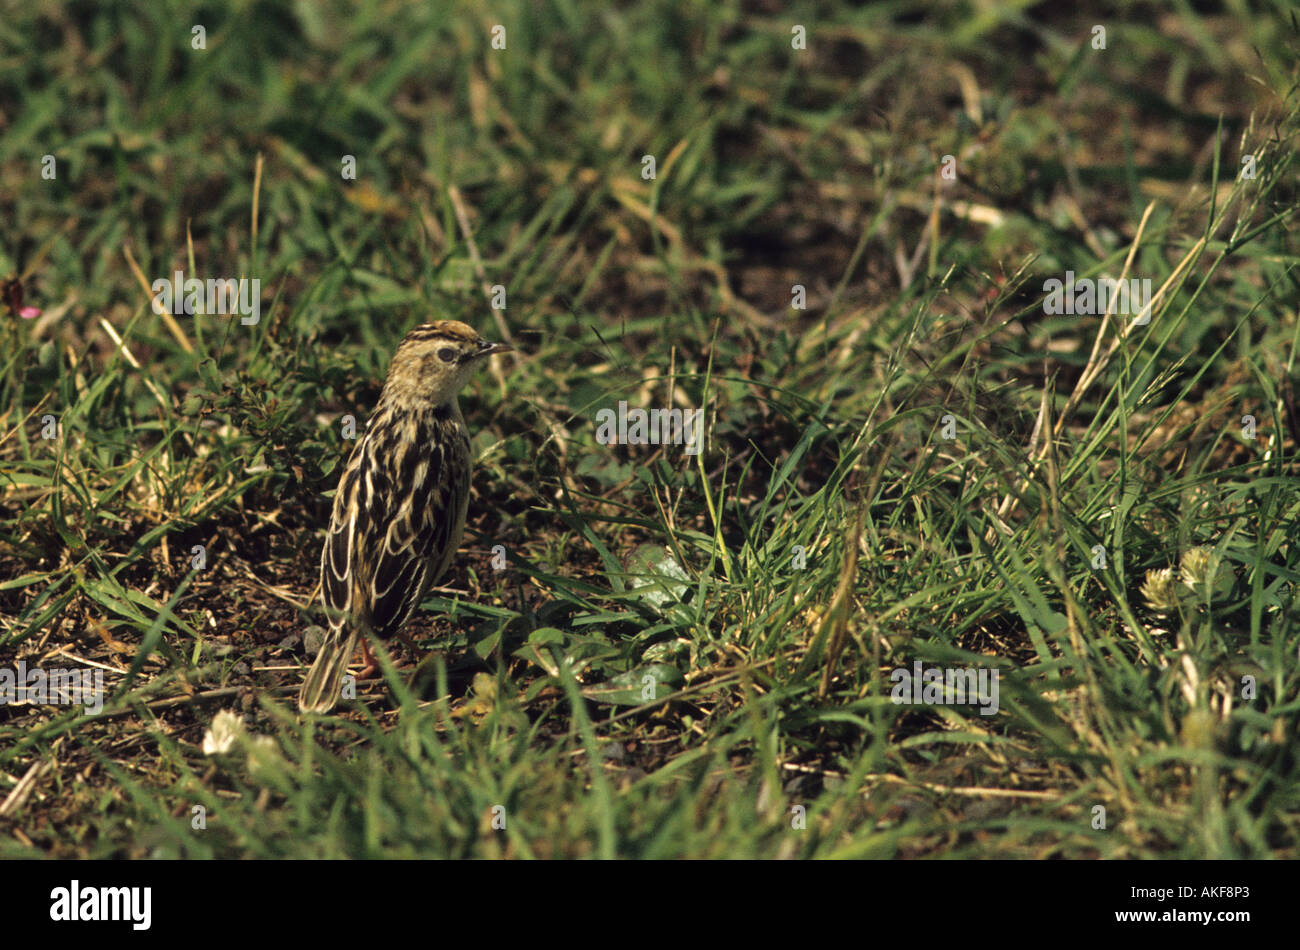 Pectoral patch Cisticola Cisticola brunnescens Standing on ground - Stock Image